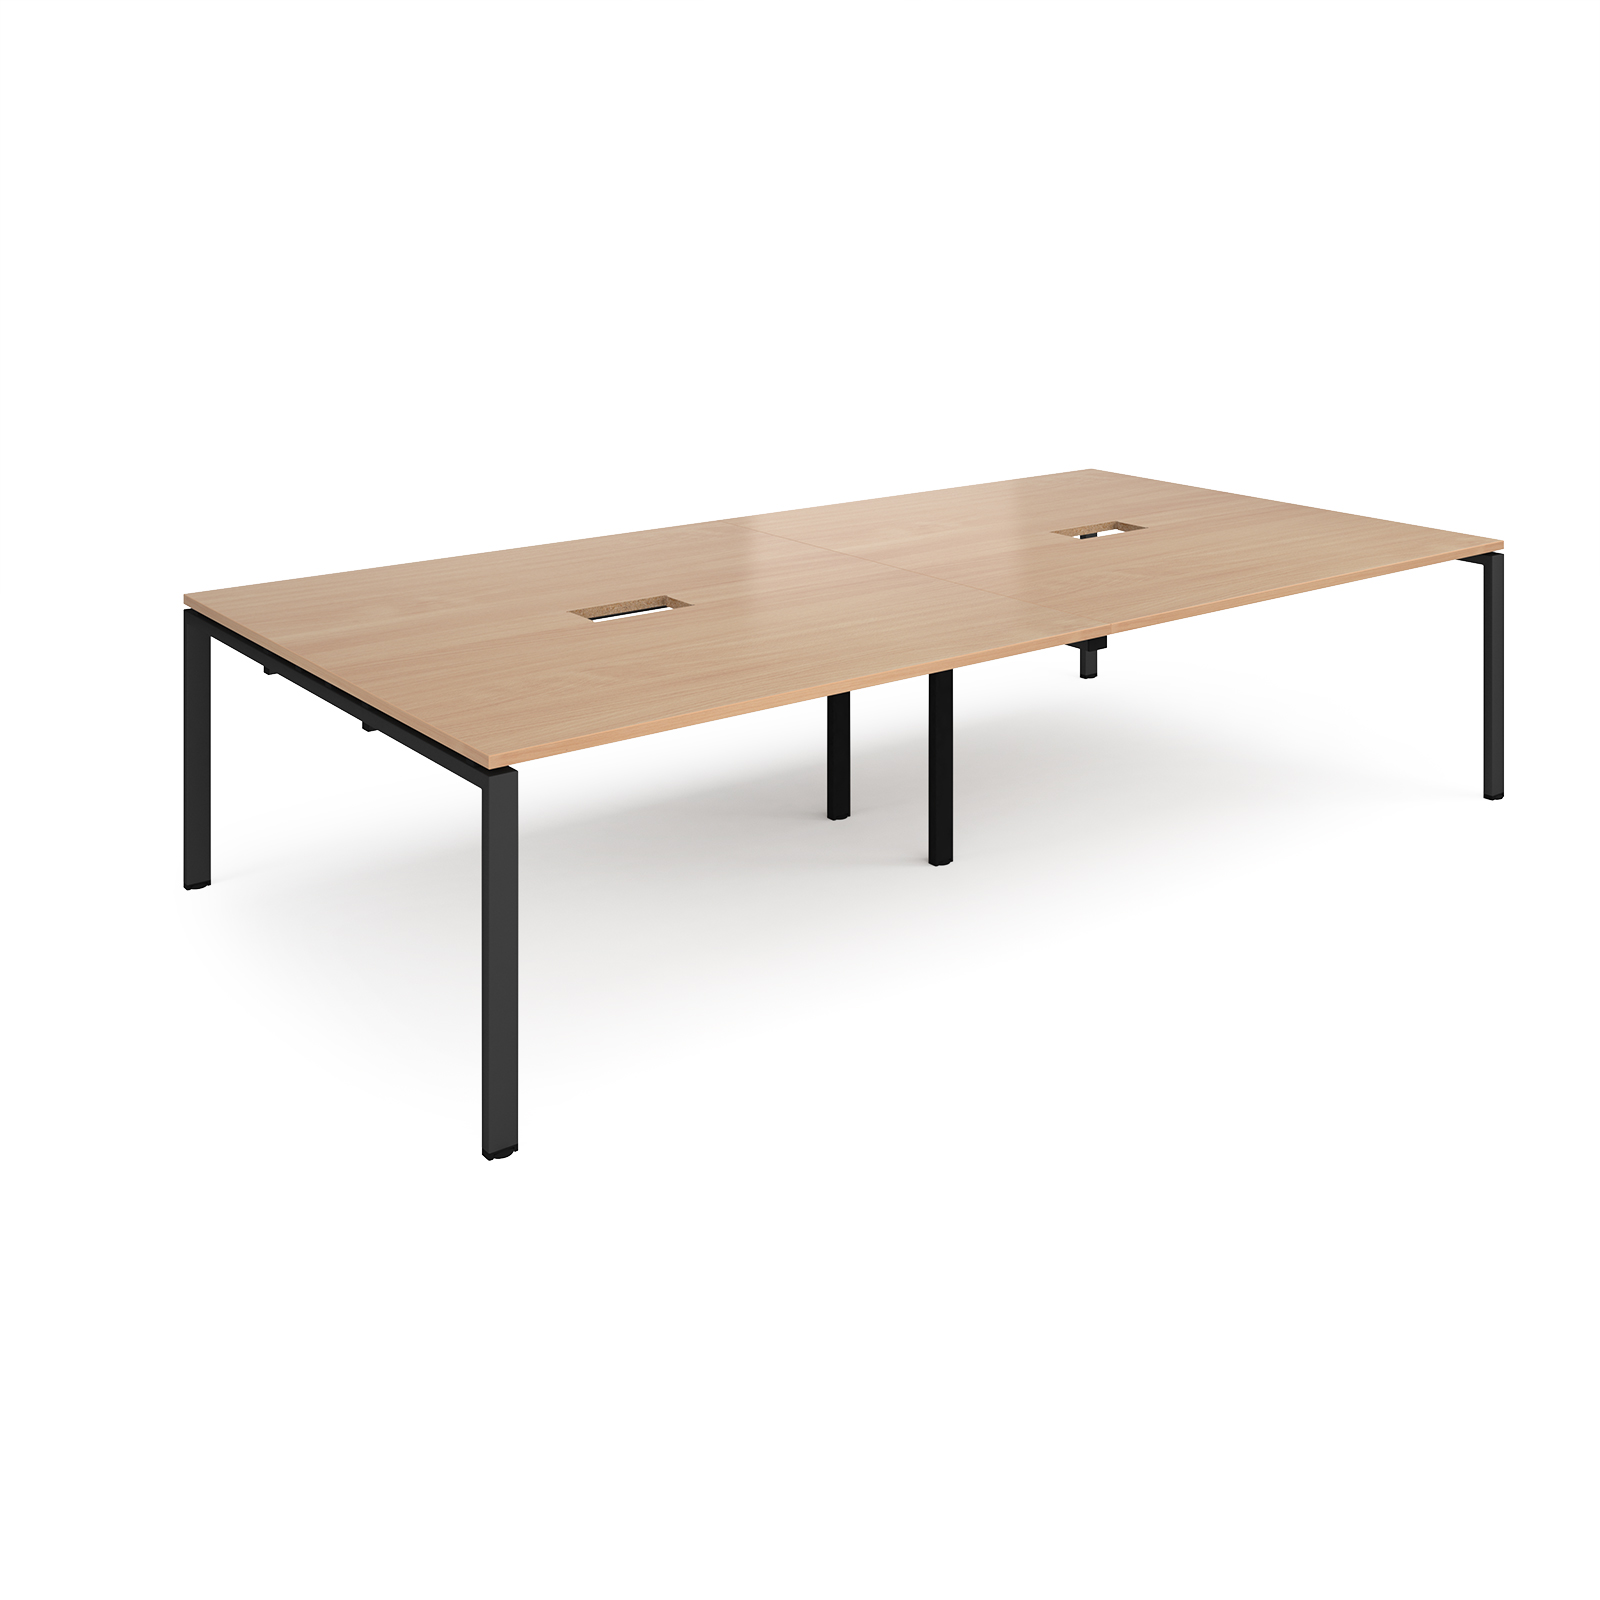 Boardroom / Meeting Adapt rectangular power ready boardroom table